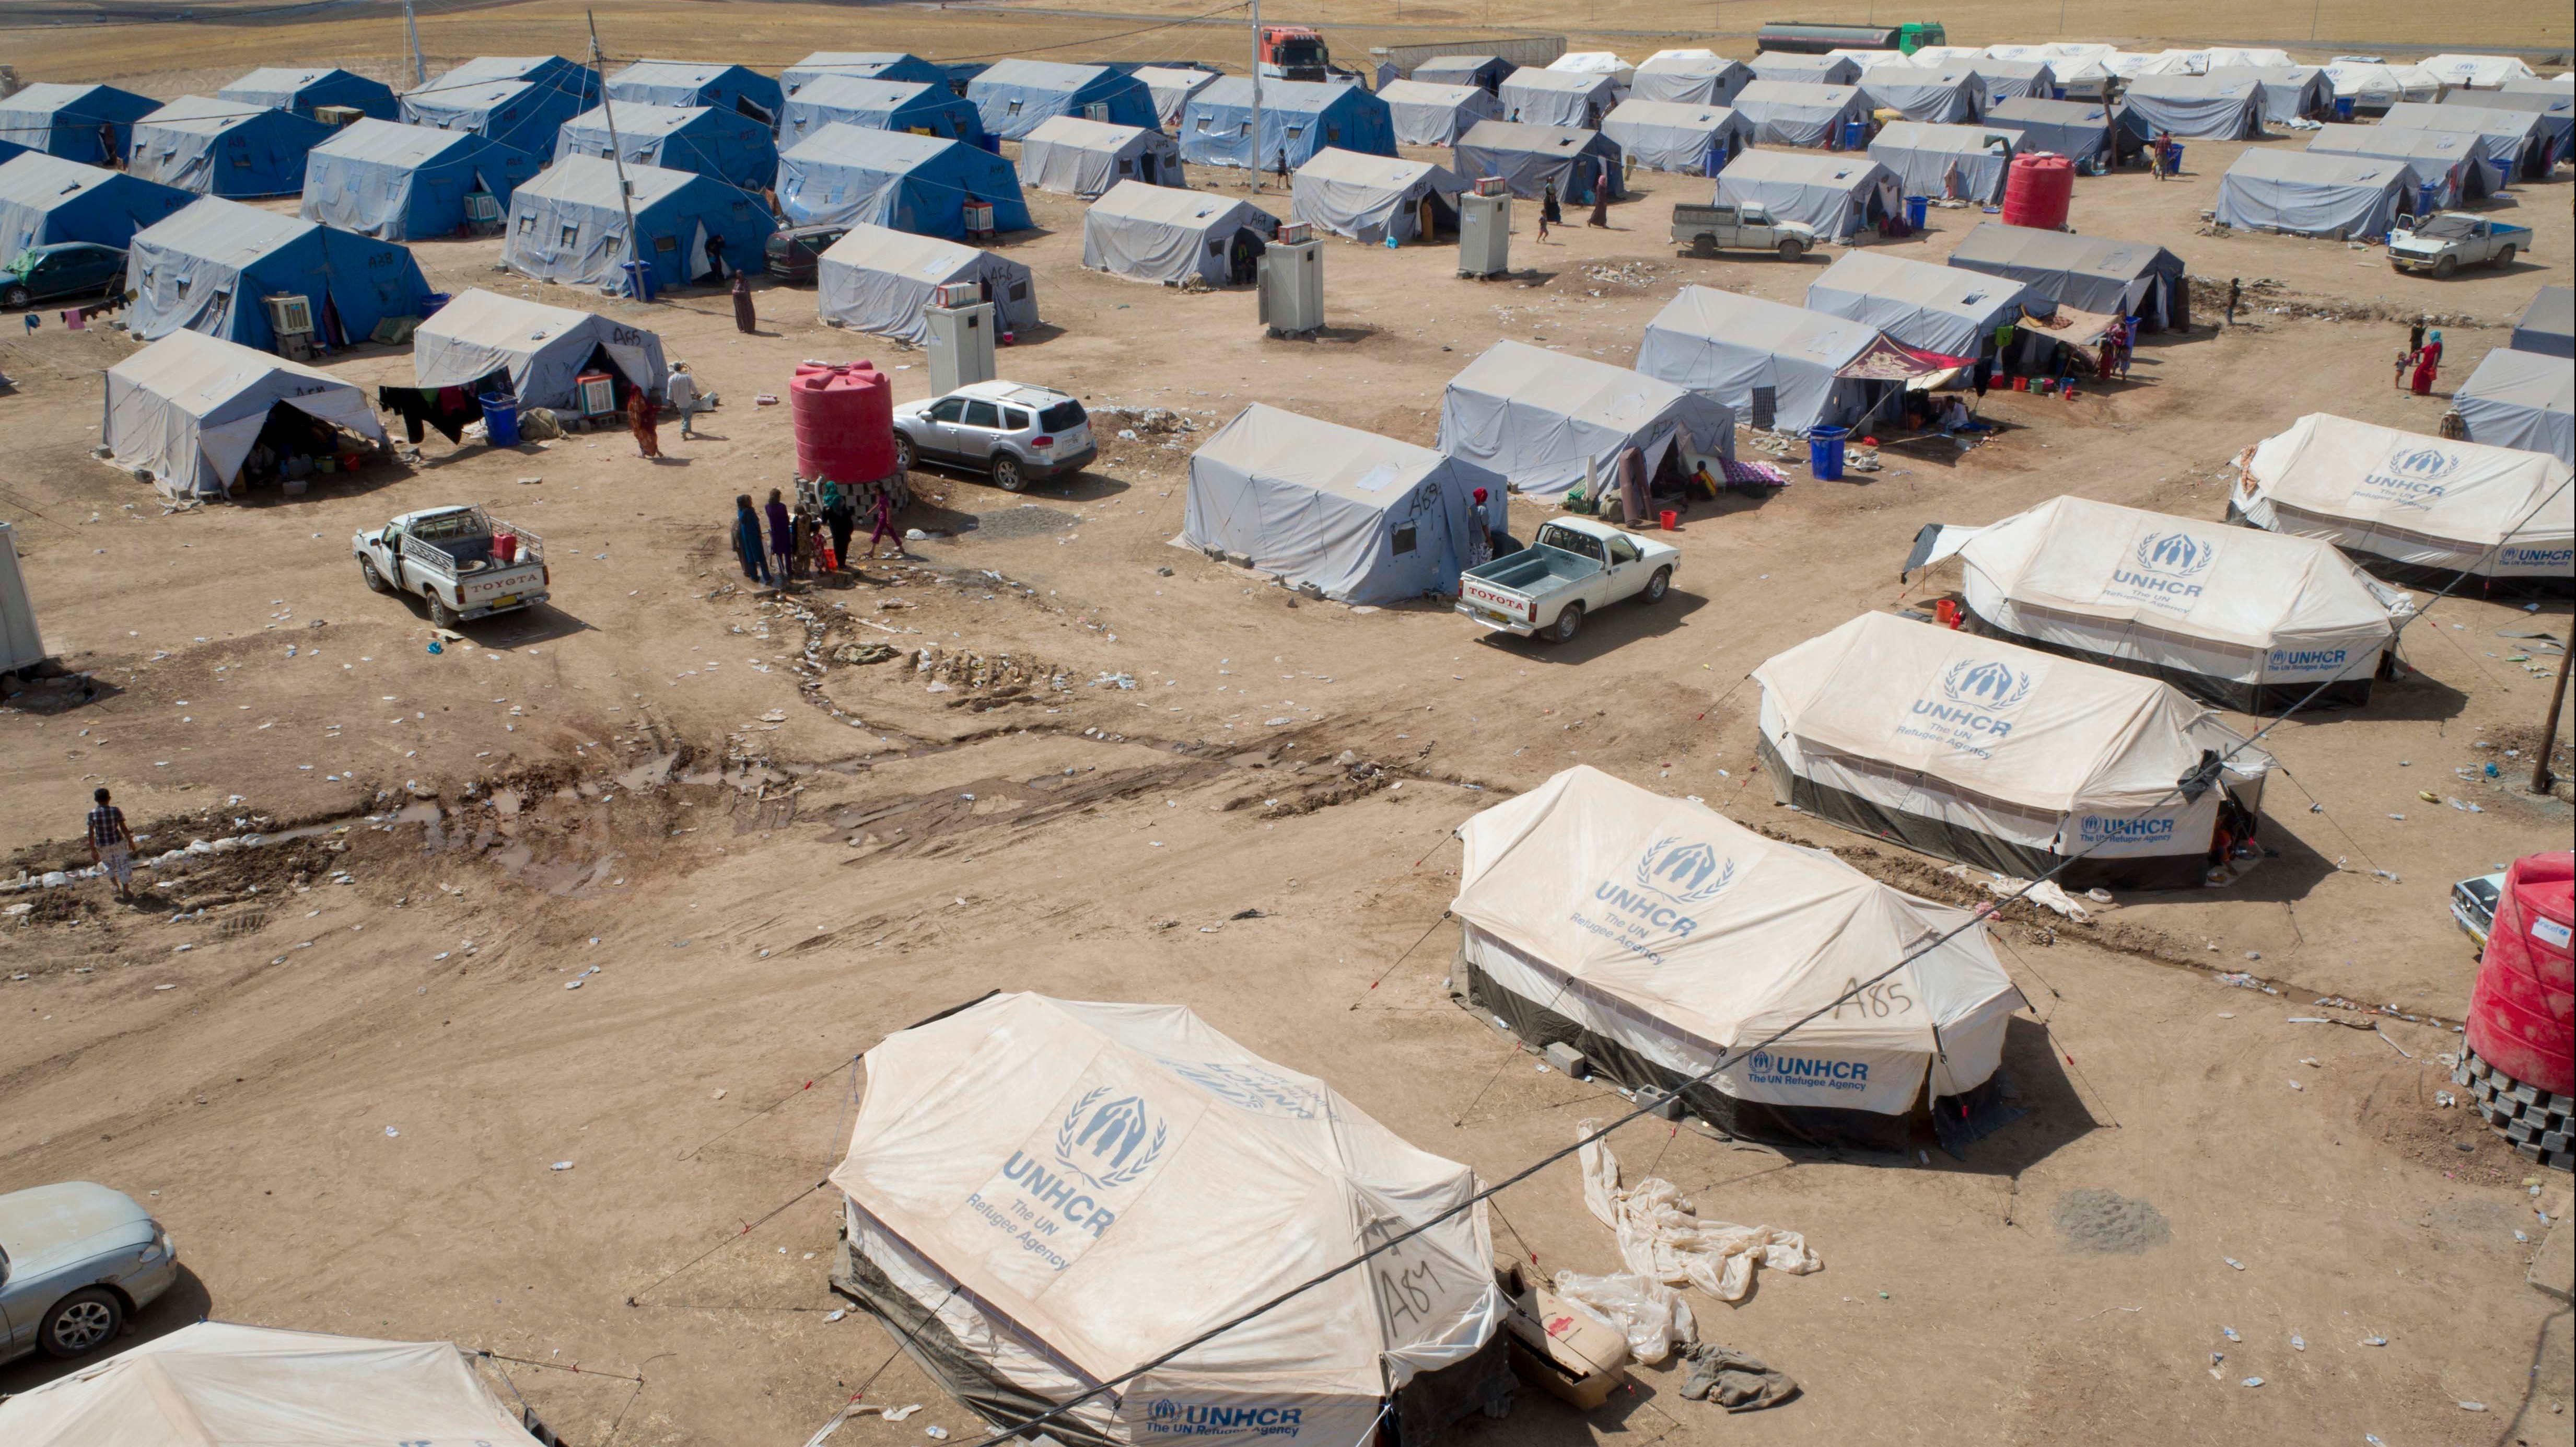 Khazair camp, on the border between central Iraq and the semi-autonomous Kurdistan region in the north, is currently home to 1,400 people displaced (IDPs) from Mosul after militants from the Islamic State of Iraq and the Levant (ISIS) took control of the